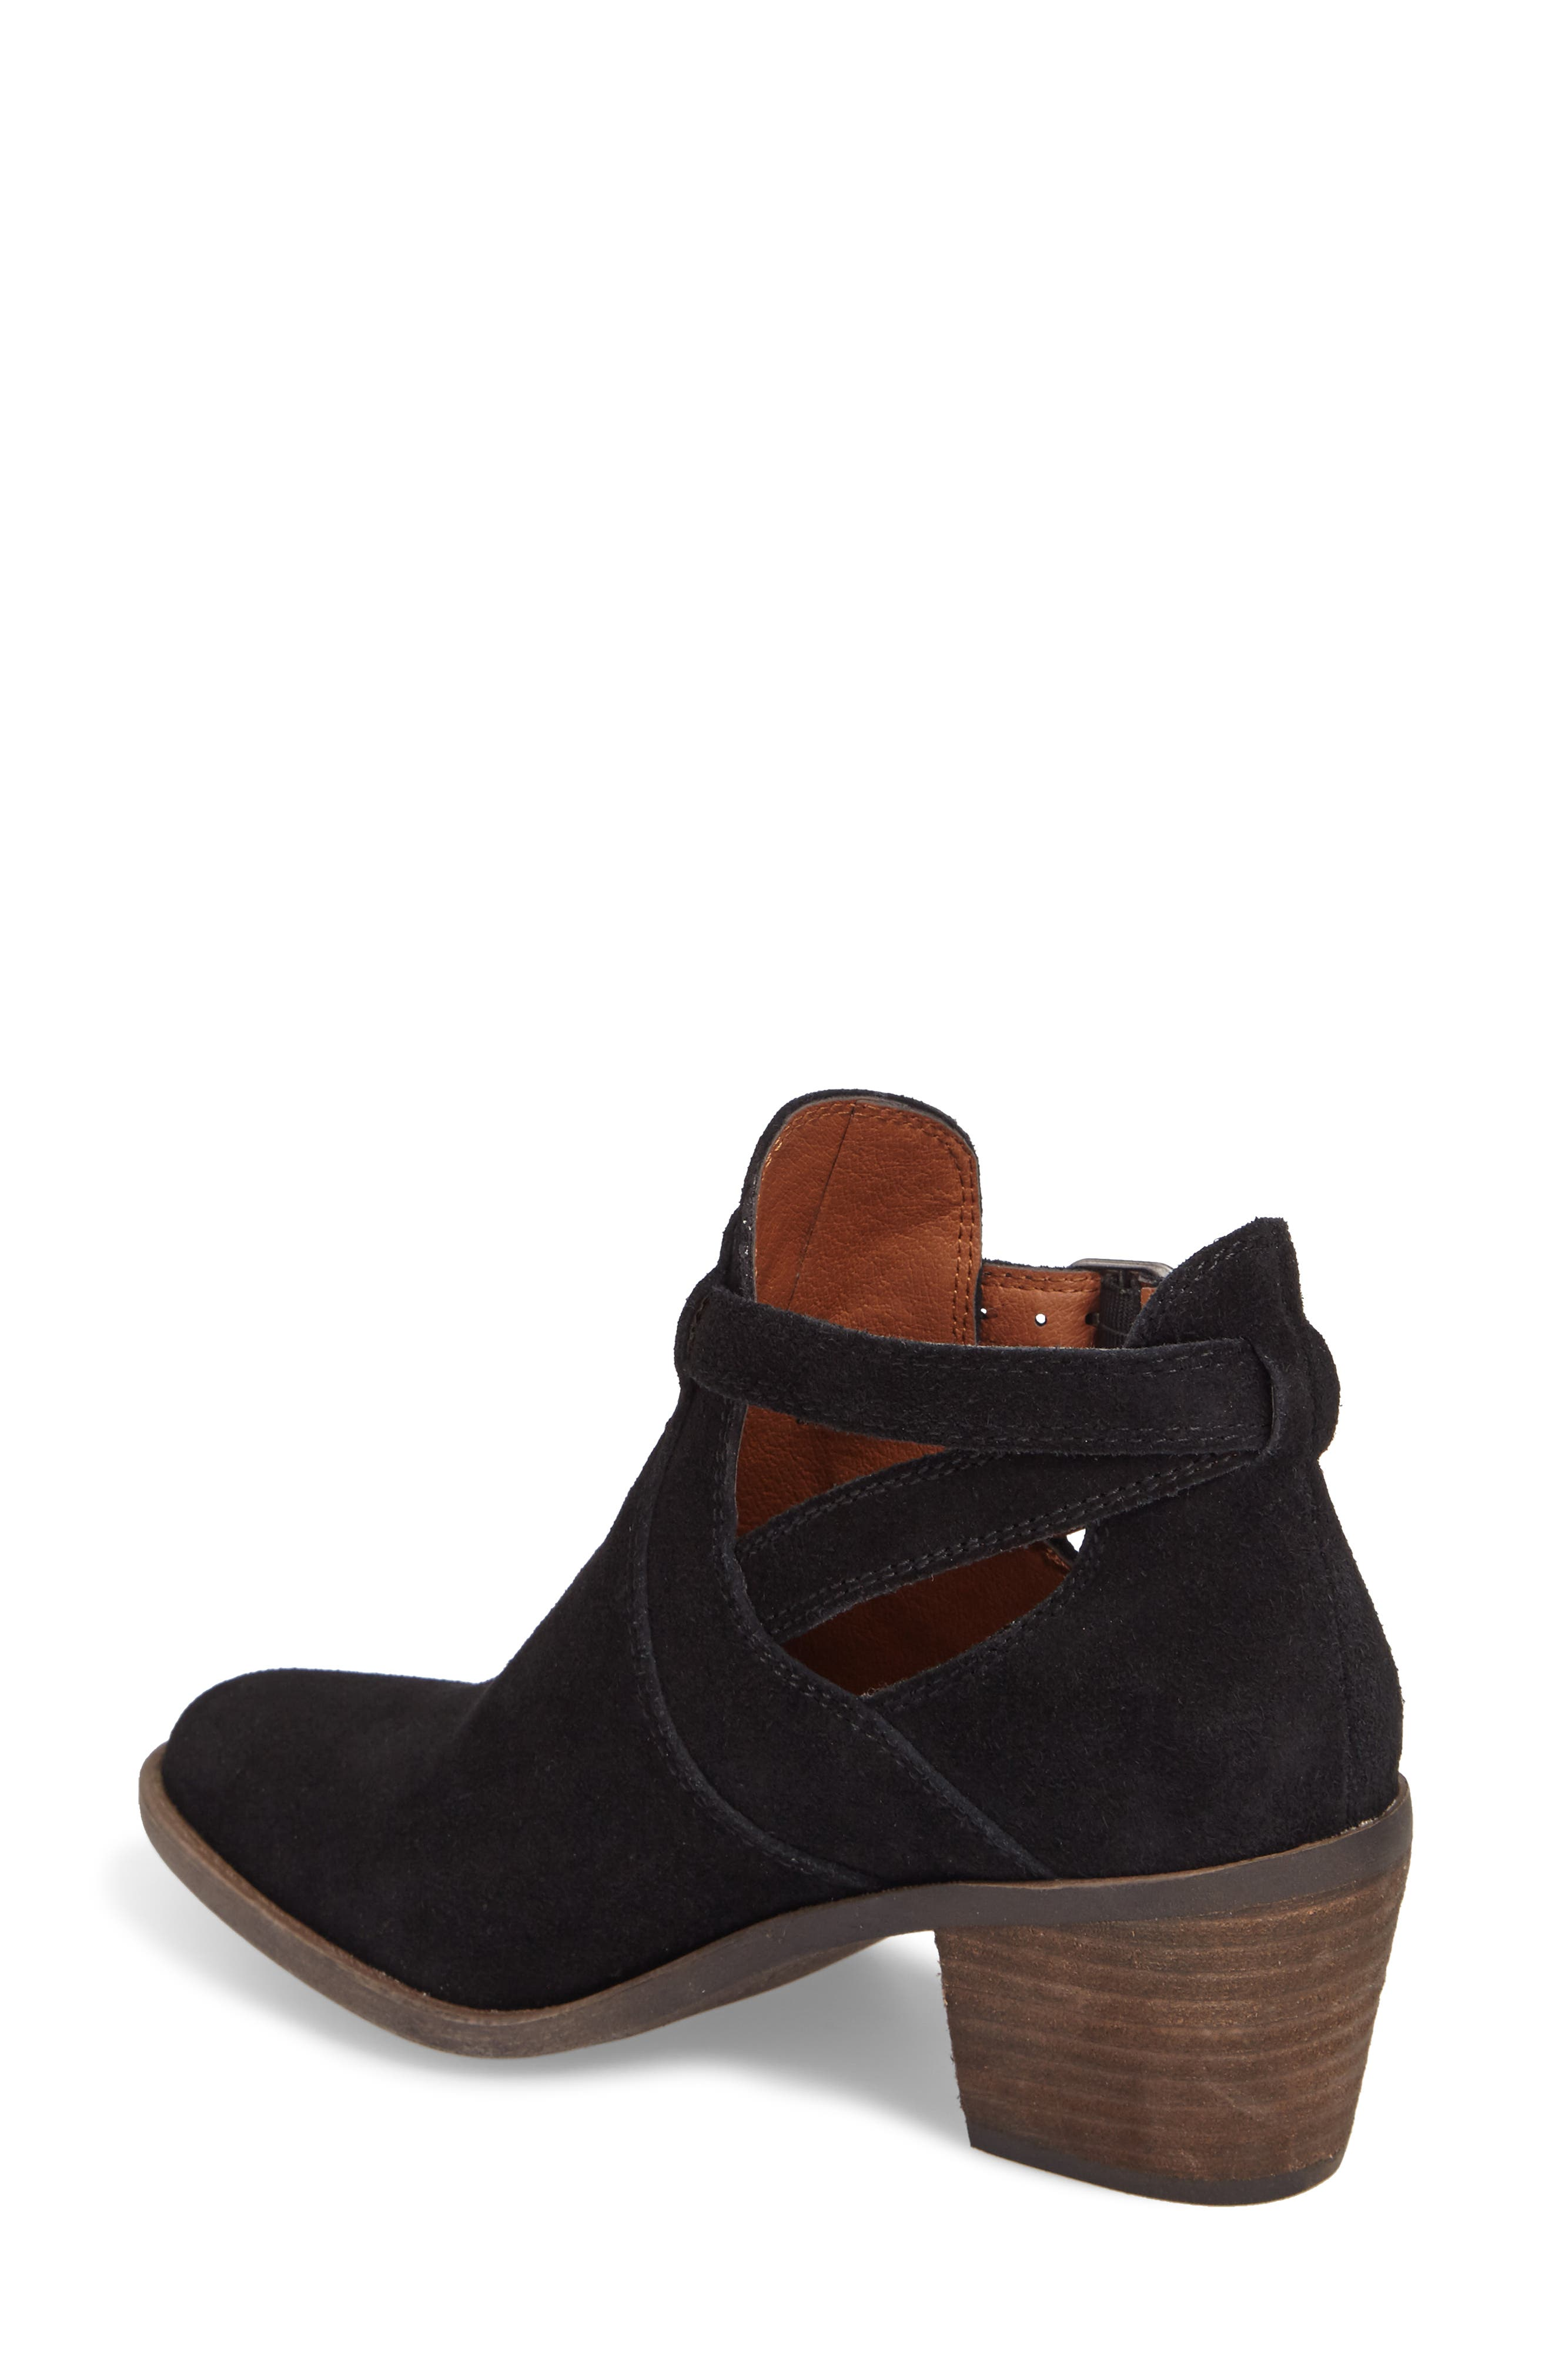 Nandita Cutout Bootie,                             Alternate thumbnail 2, color,                             001